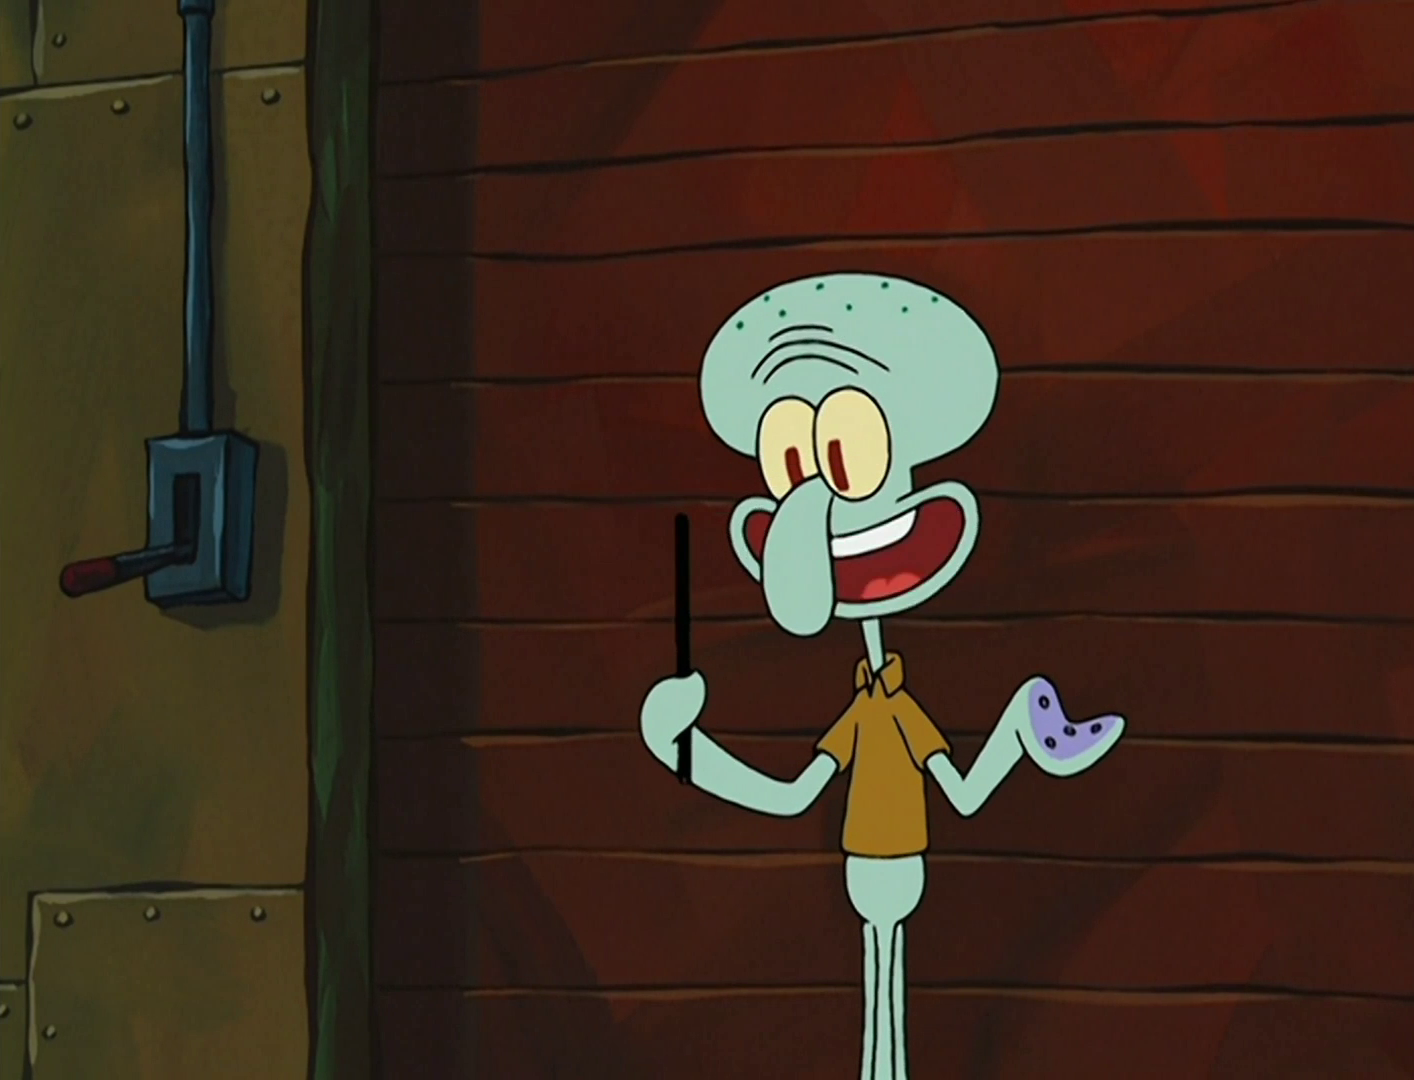 File:Band Geeks 097.png